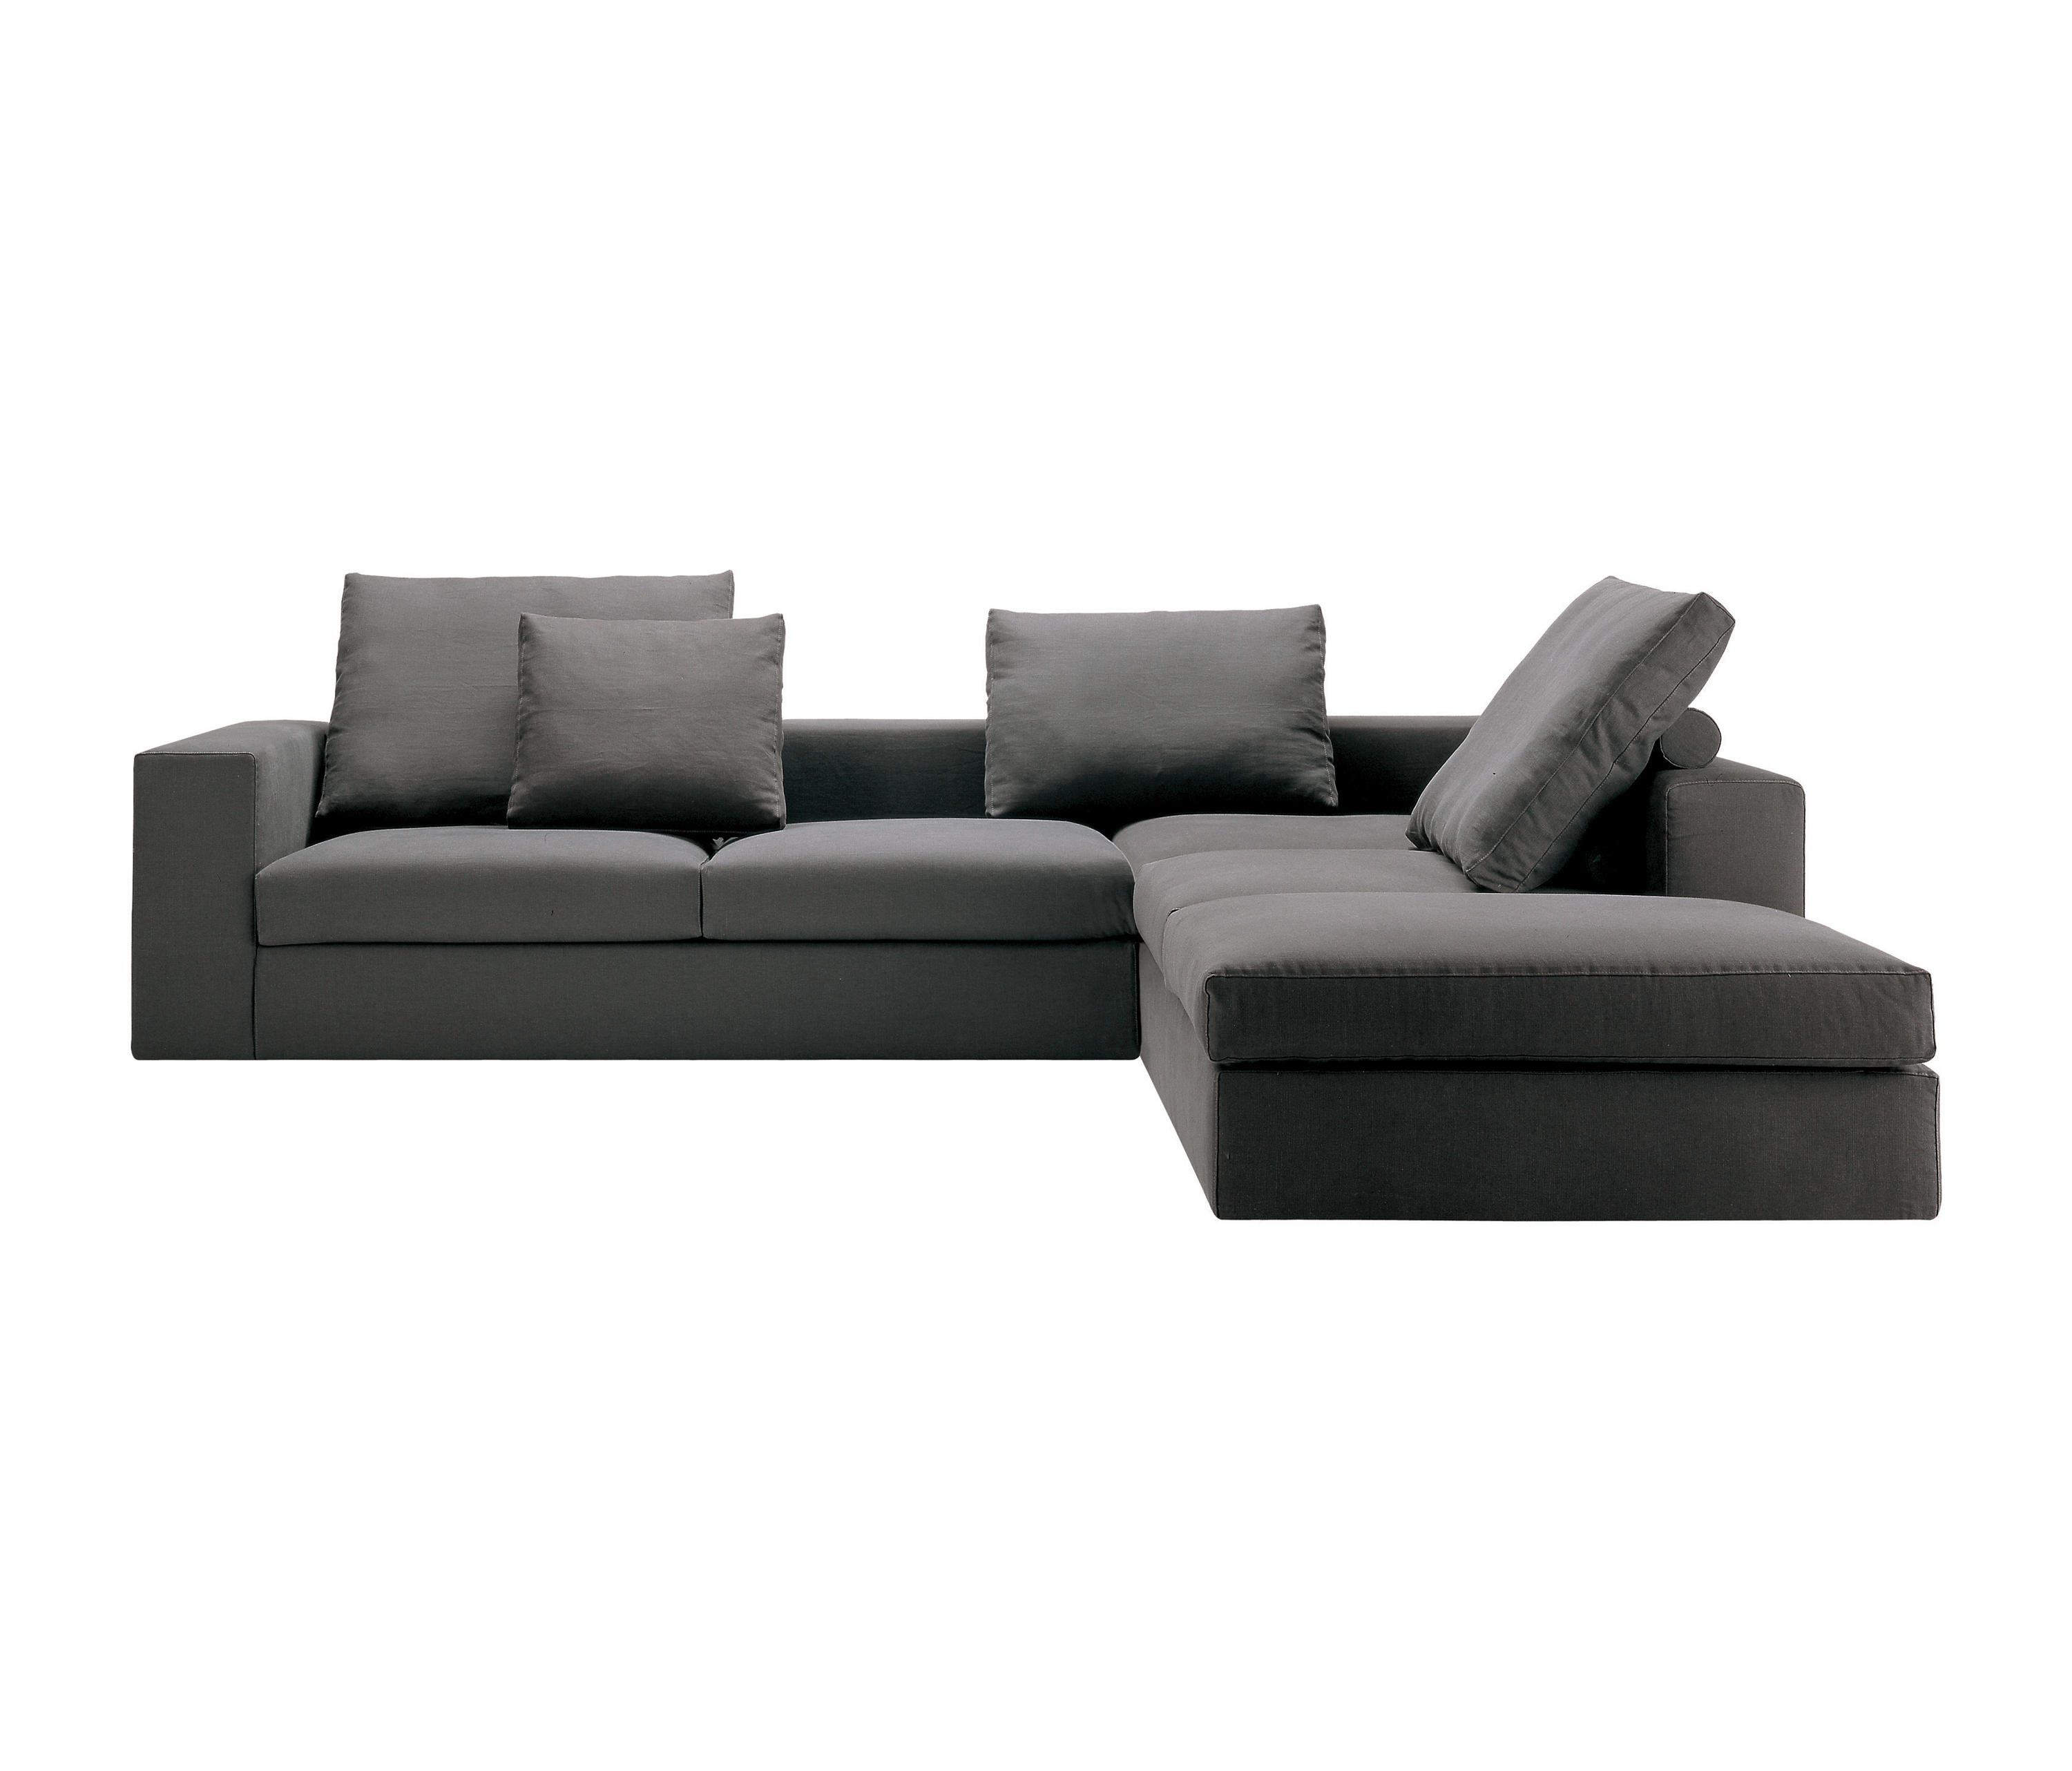 beta 1240 modular sofa systems from zanotta architonic. Black Bedroom Furniture Sets. Home Design Ideas